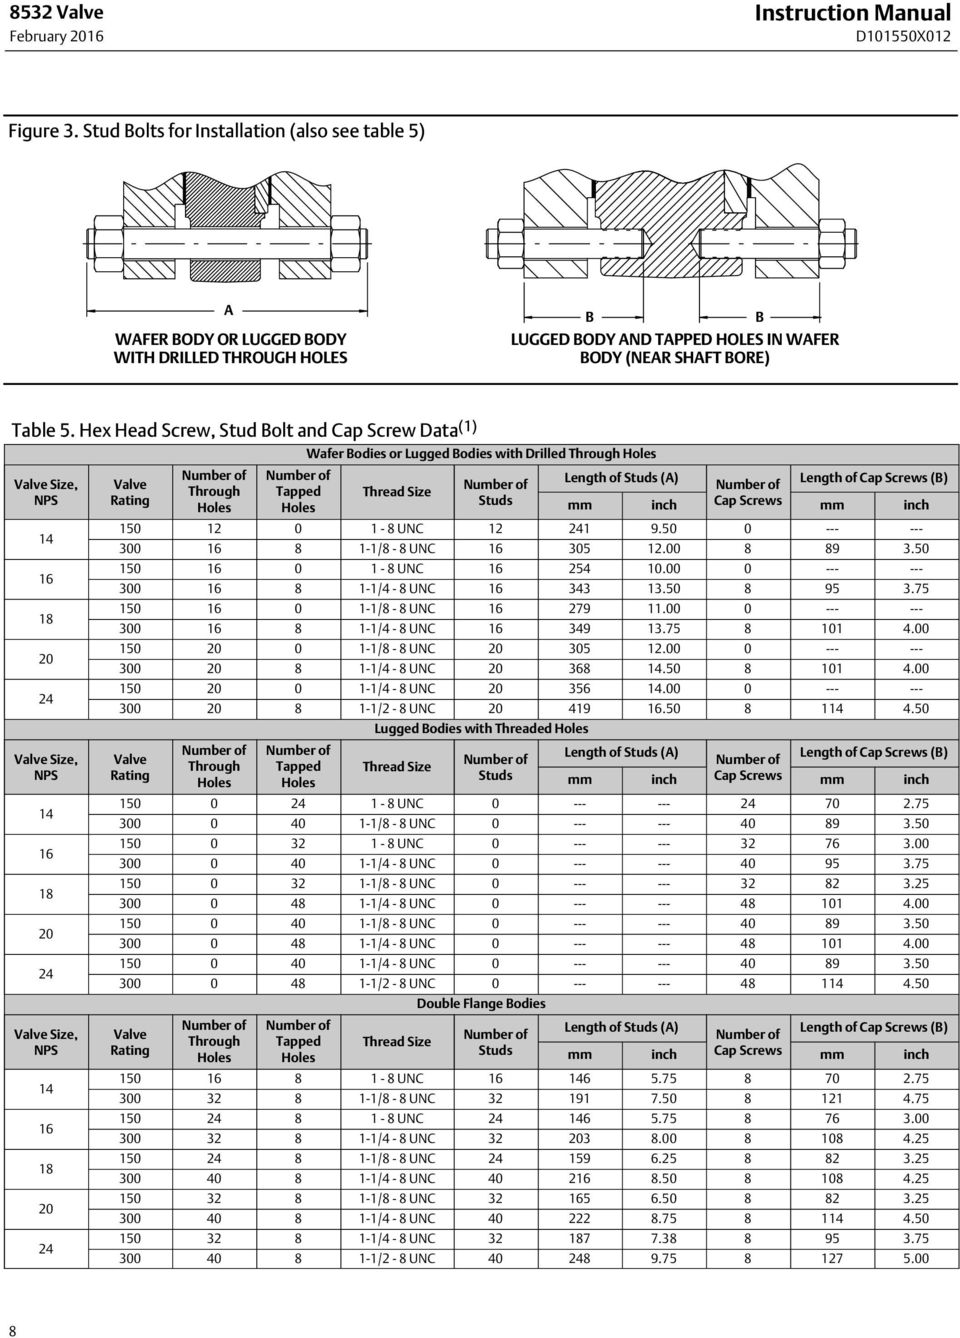 Hex Head Screw, Stud Bolt and Cap Screw Data (1) Valve Size, NPS 14 16 18 20 24 Valve Size, NPS 14 16 18 20 24 Valve Size, NPS 14 16 18 20 24 Valve Rating Number of Through Holes Number of Tapped